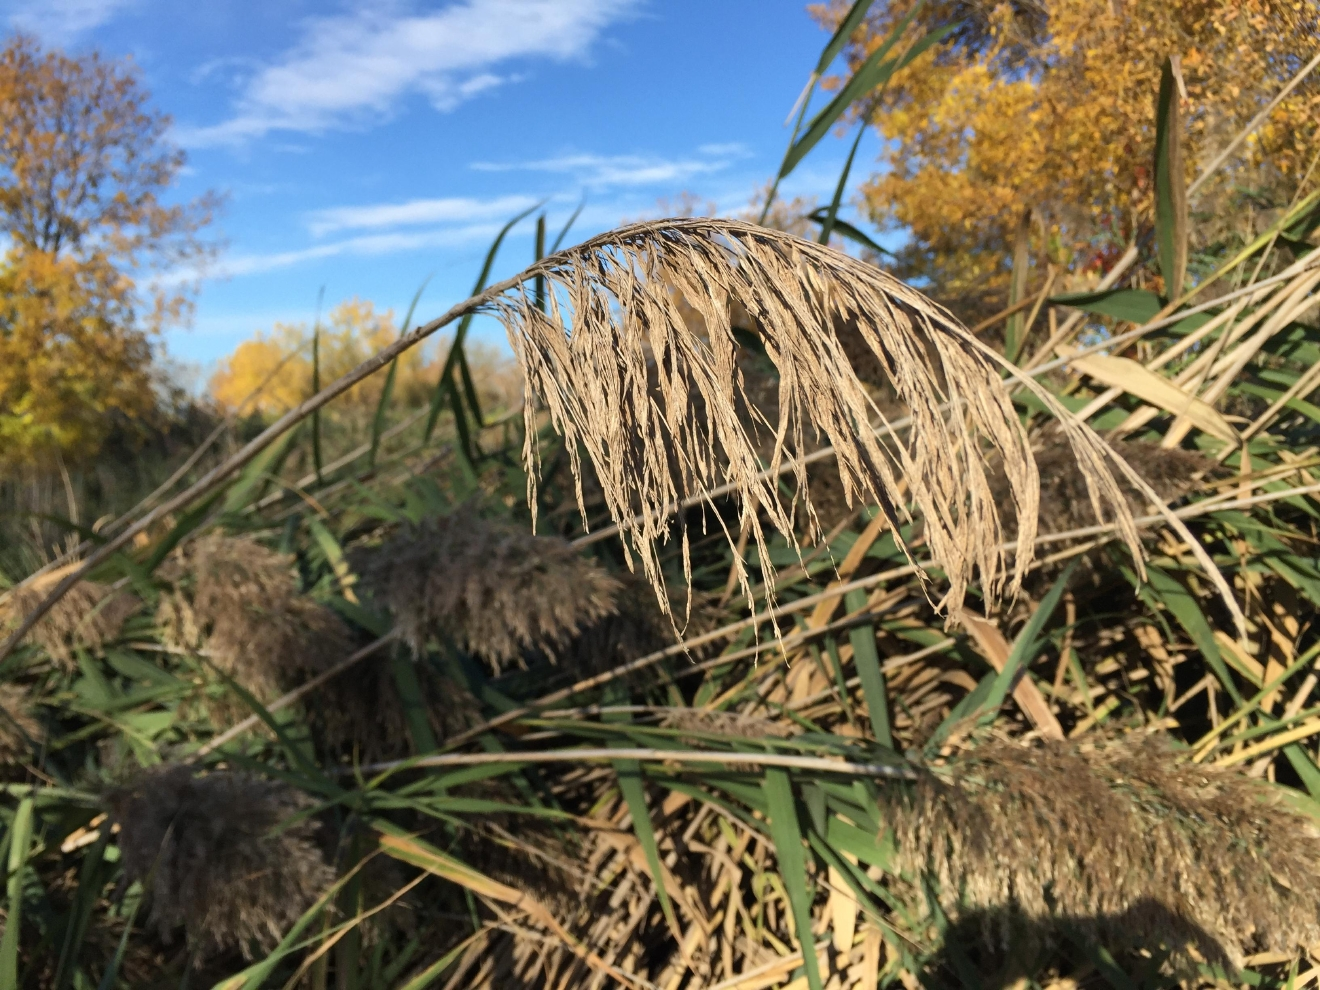 Phragmites grass at Ken Euers Nature Area in Green Bay, October 20, 2016 (WLUK/Eric Peterson)